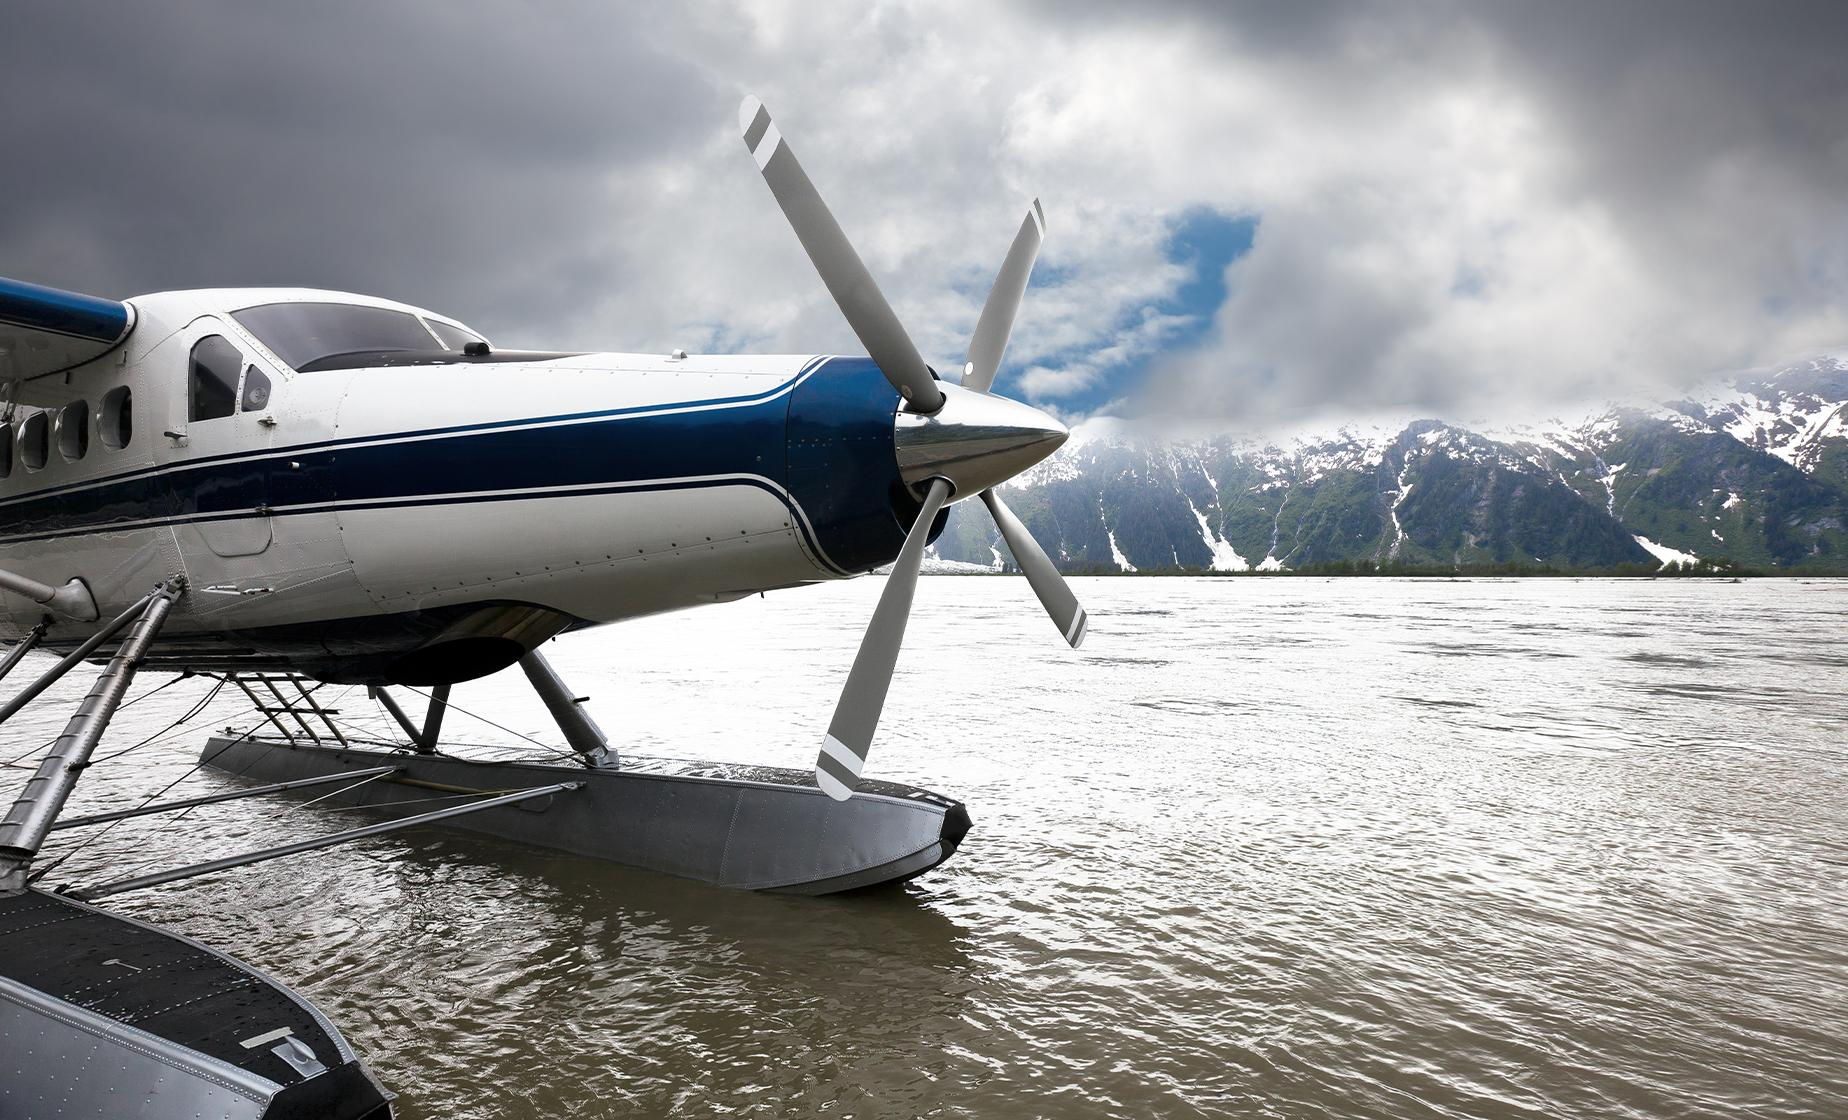 Seaplane Sightseeing Spectacular Day Tour from Ketchikan, Alaska